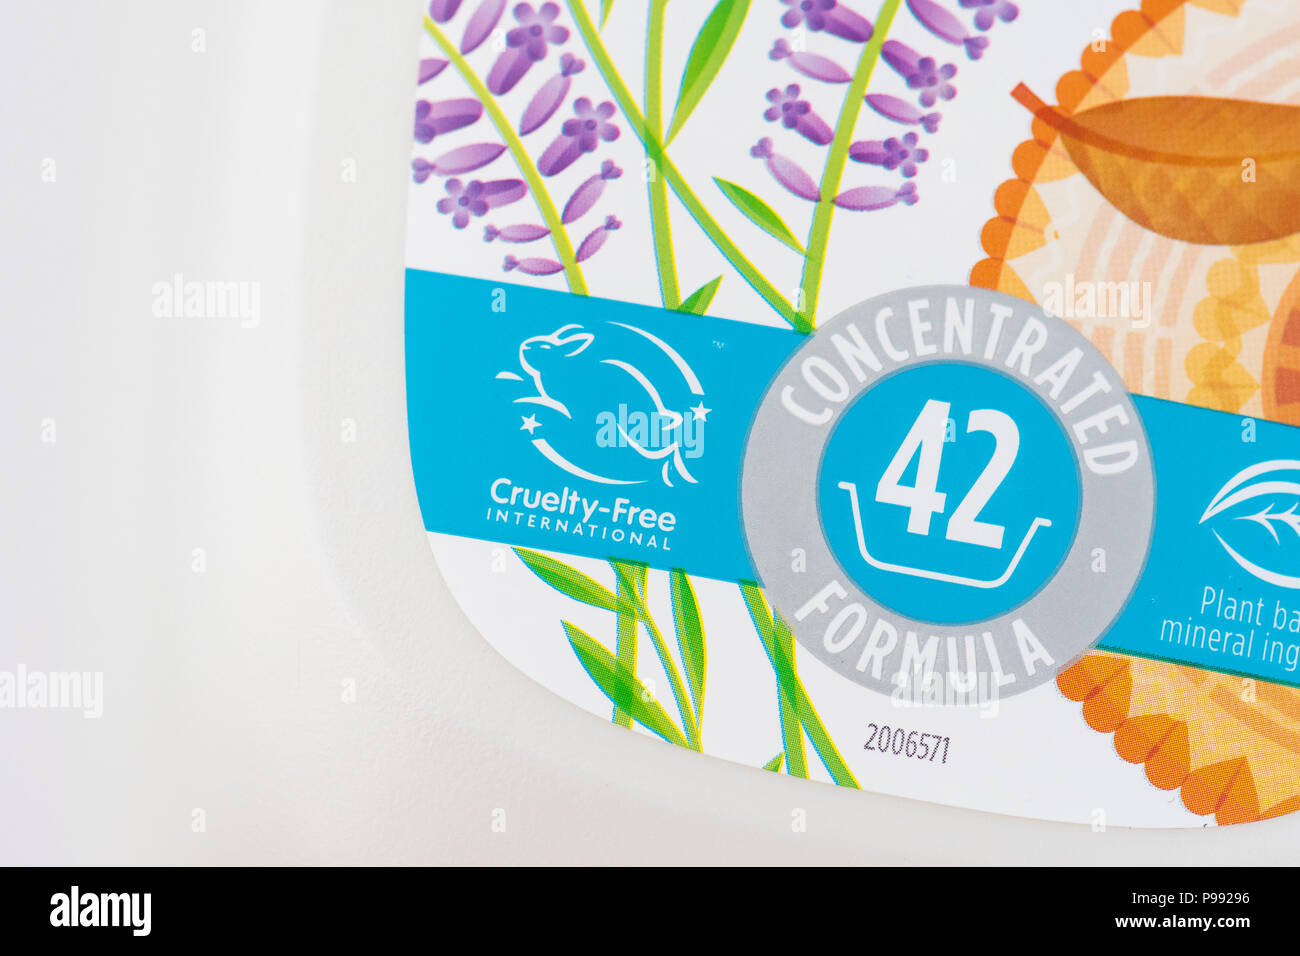 Cruelty Free International logo and symbol on Ecover product - Stock Image